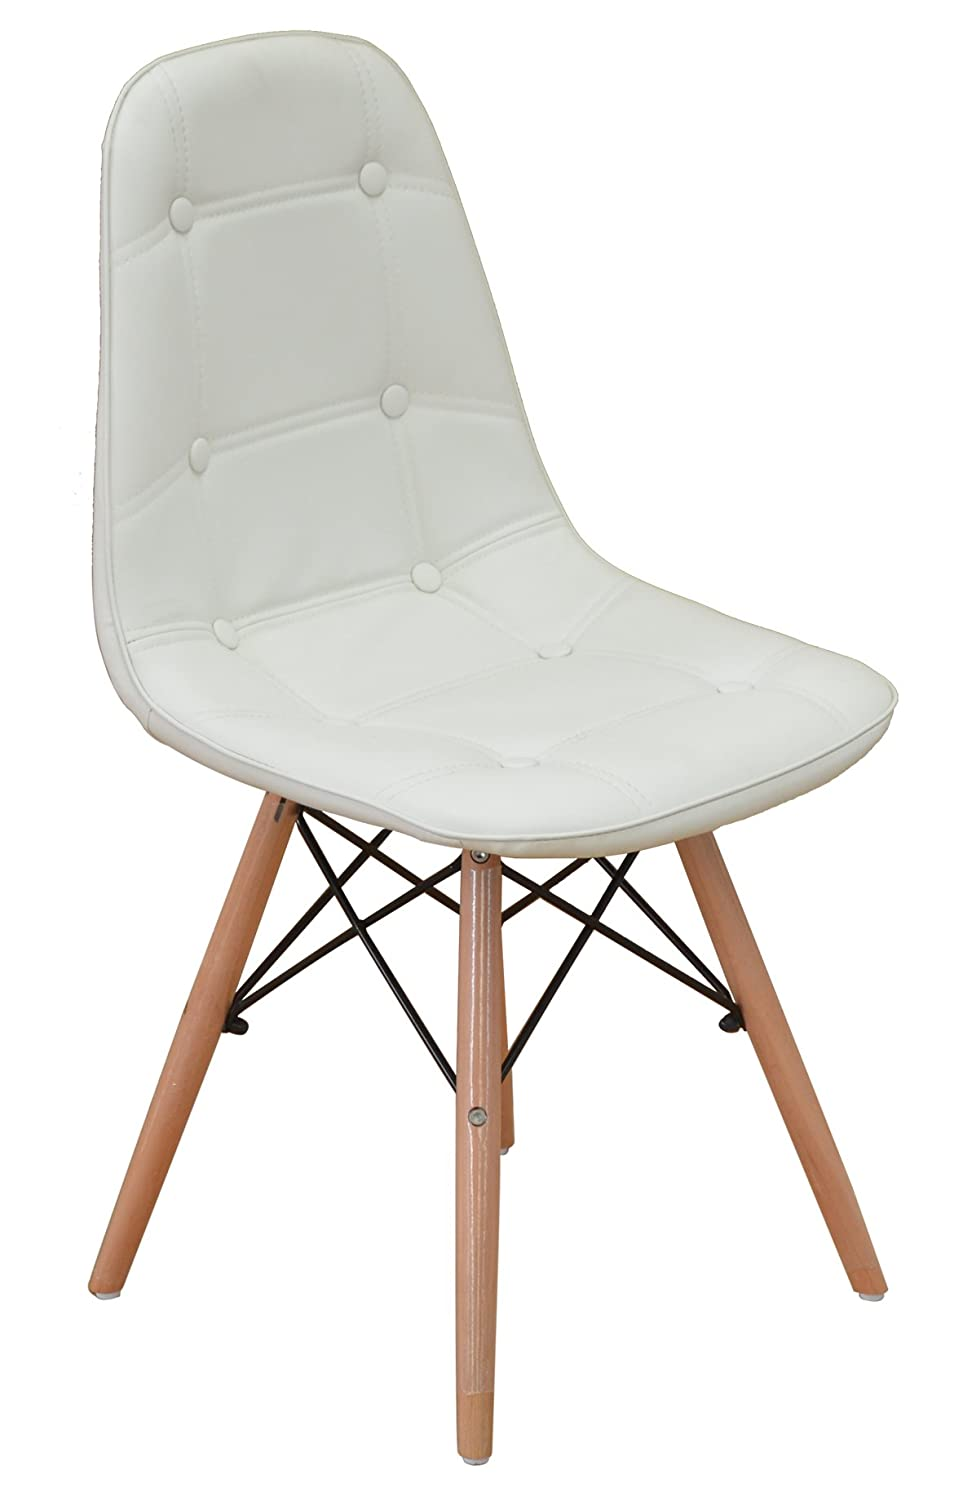 amazon com modern set of tufted 2 eames style chair natural wood